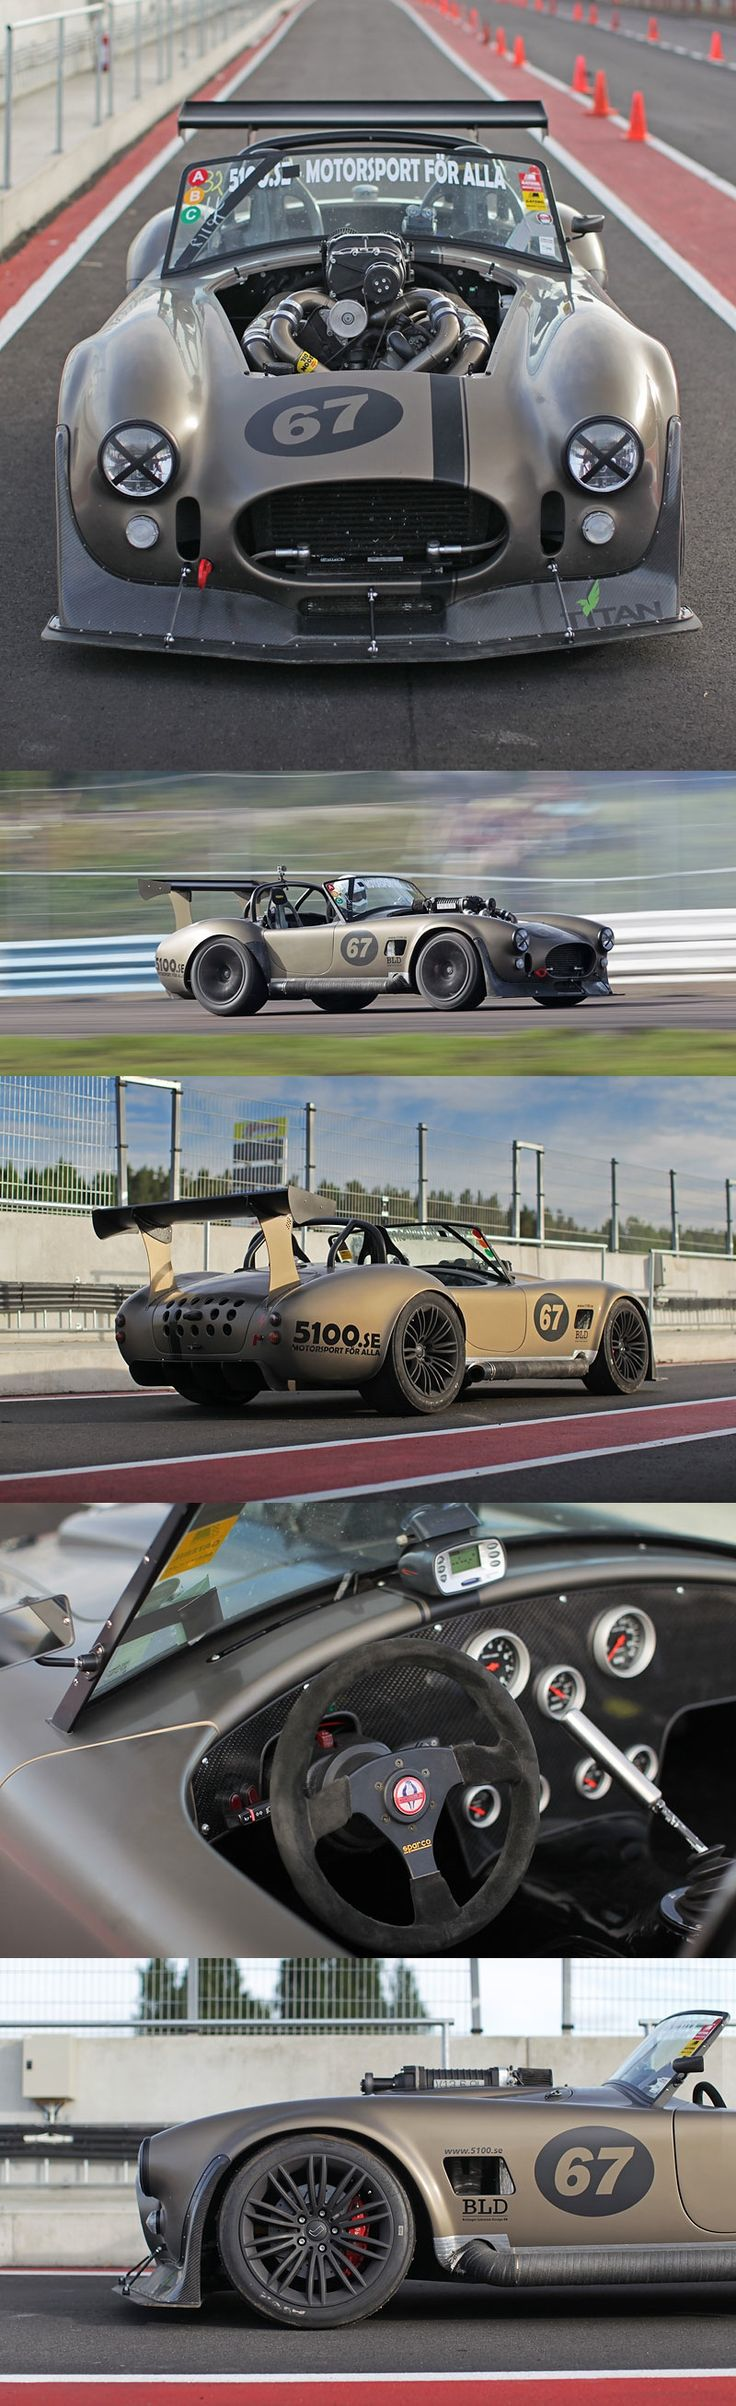 47. Magnus Jinstrand Mercedes V-12 powered Shelby Cobra. 492whp / 600hp at the crank; Lyshom 3500 twin-screw supercharger!